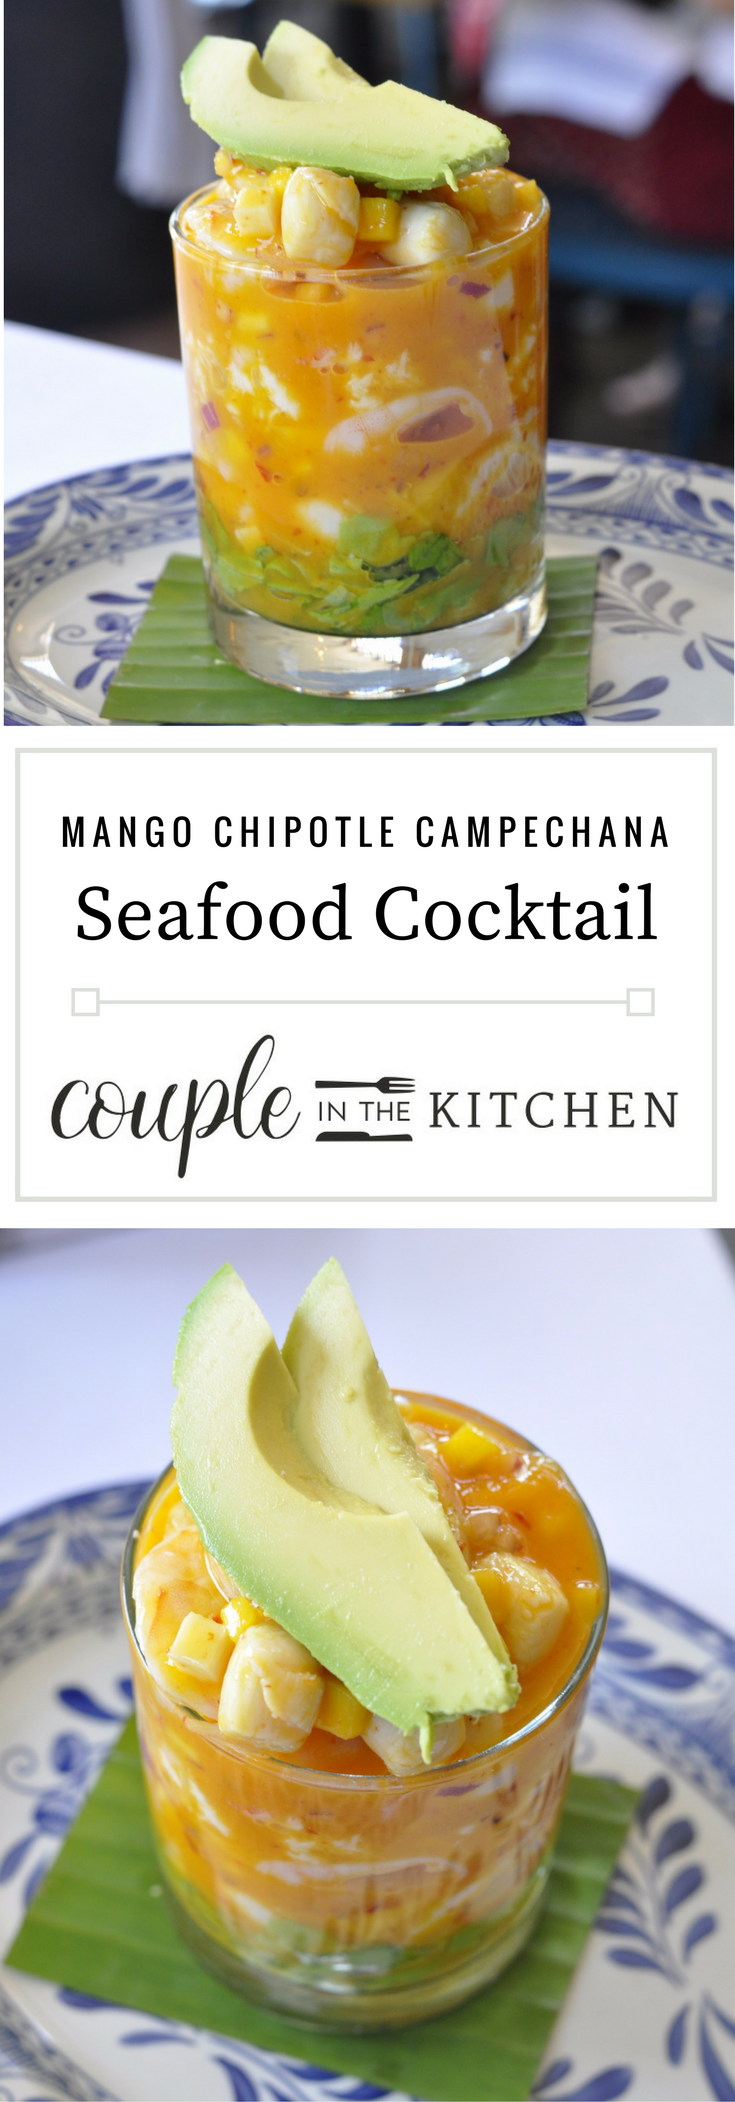 Seafood Appetizer - Mango Chipotle Seafood Cocktail | coupleinthekitchen.com